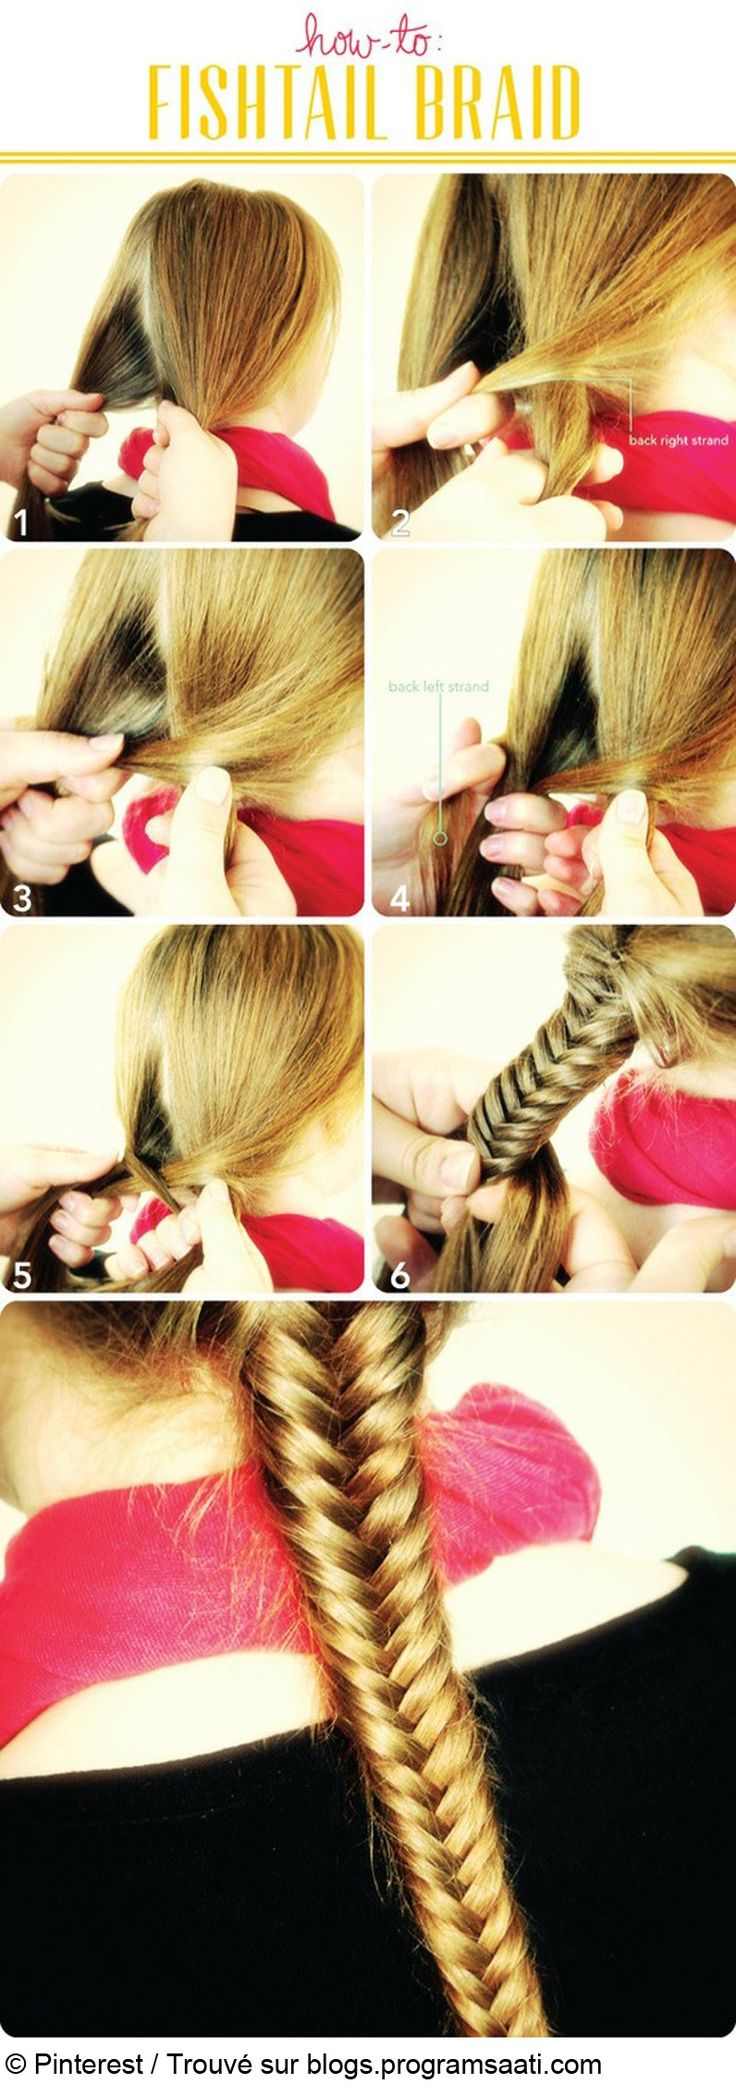 Tuto tresse épi fishtail braid